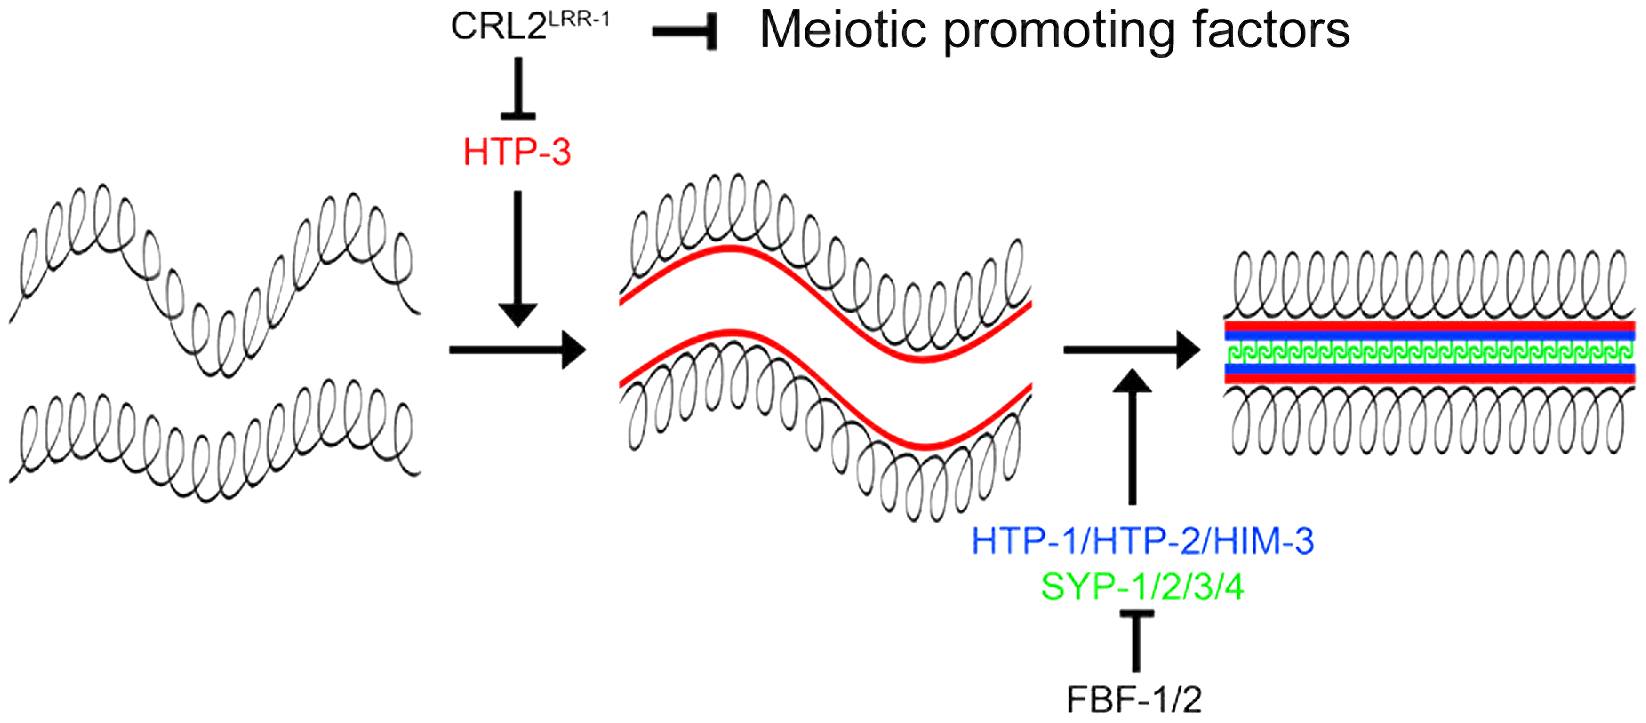 CRL2<sup>LRR-1</sup> regulates entry into meiosis.